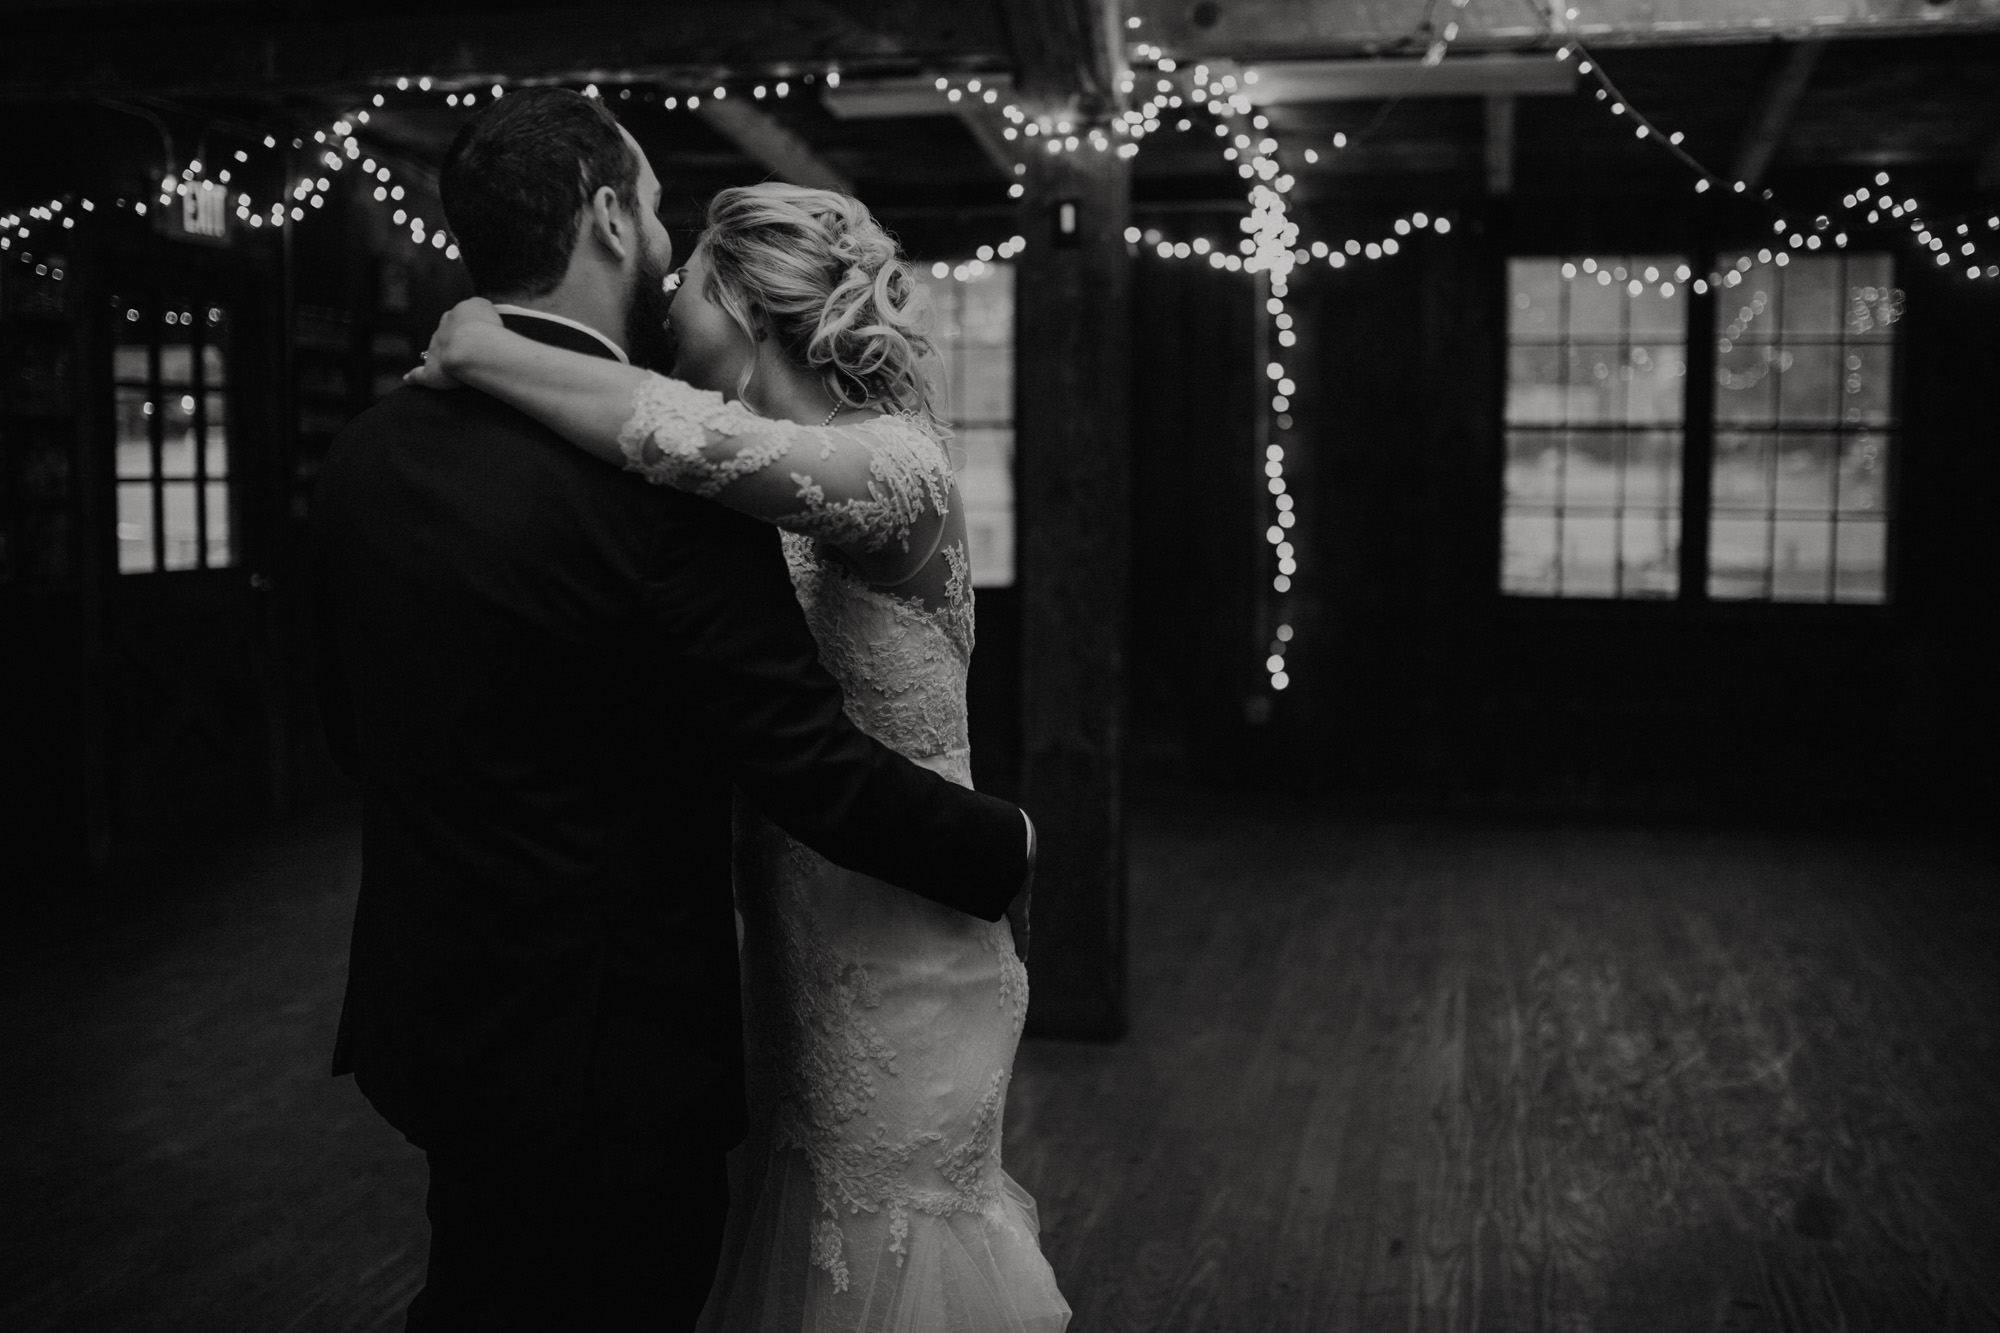 The bride and groom have their first dance beneath fairy lights in the camp's mess hall